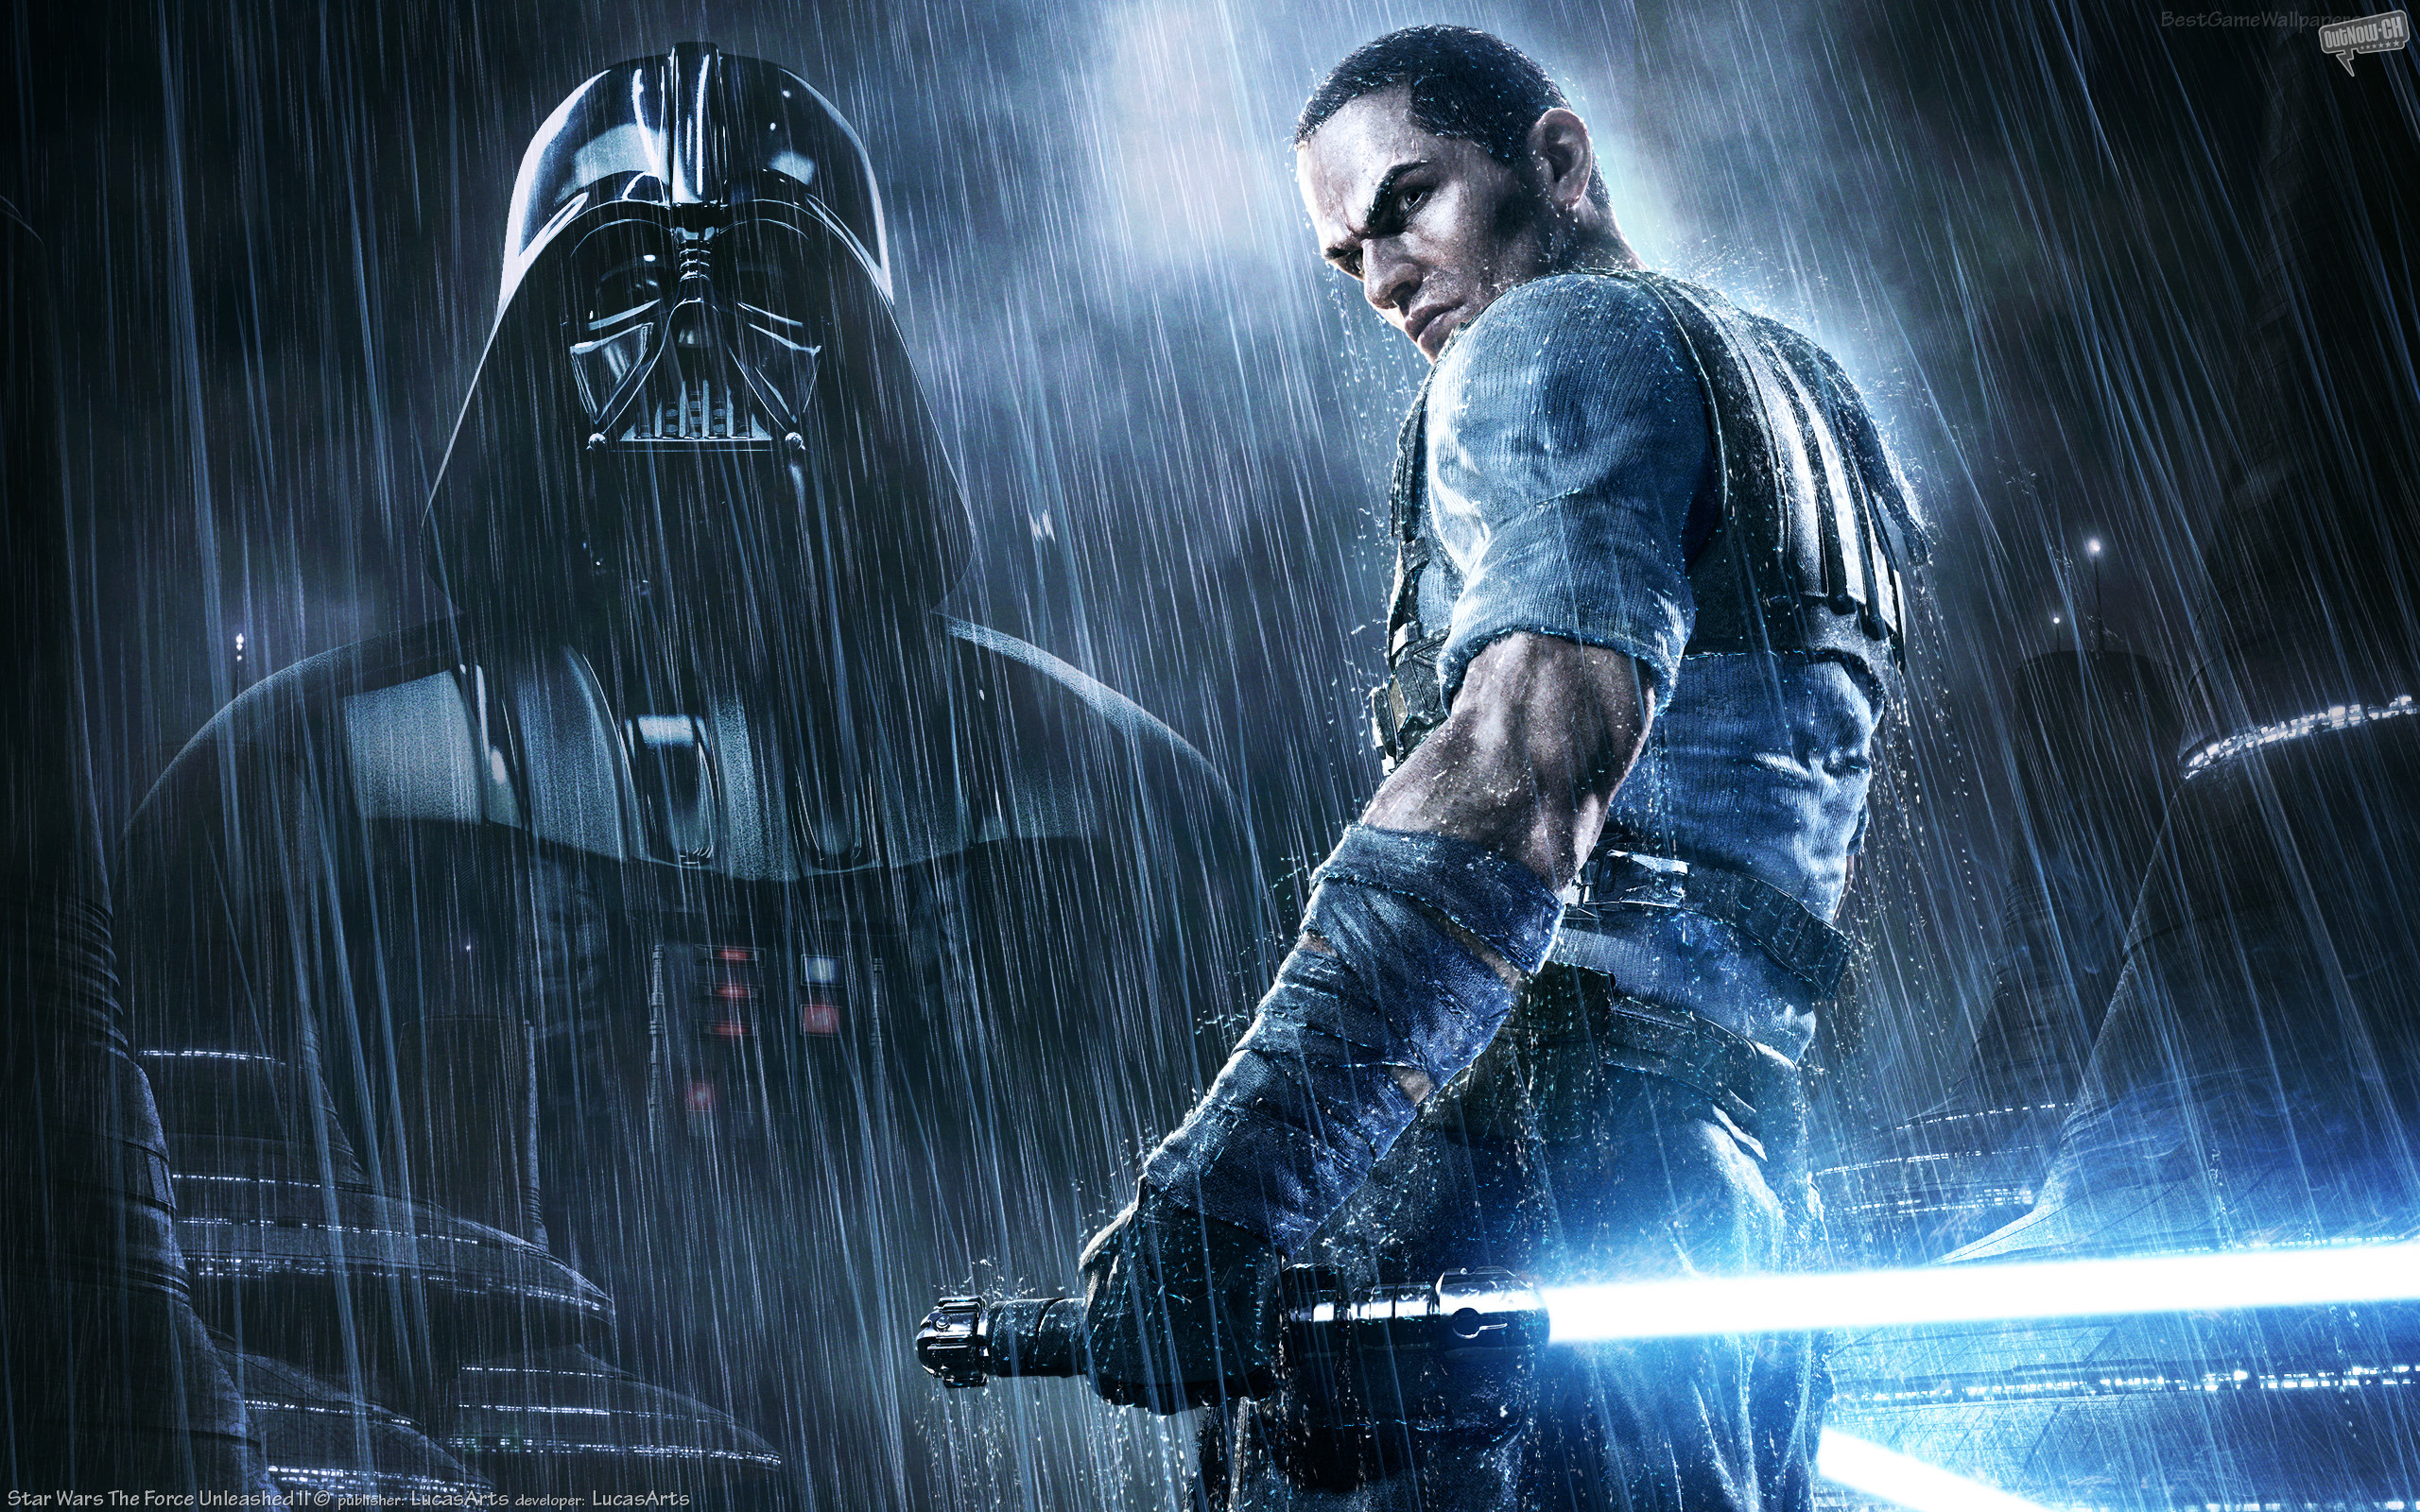 Star Wars: Force Unleashed 2 Fondos De Pantalla